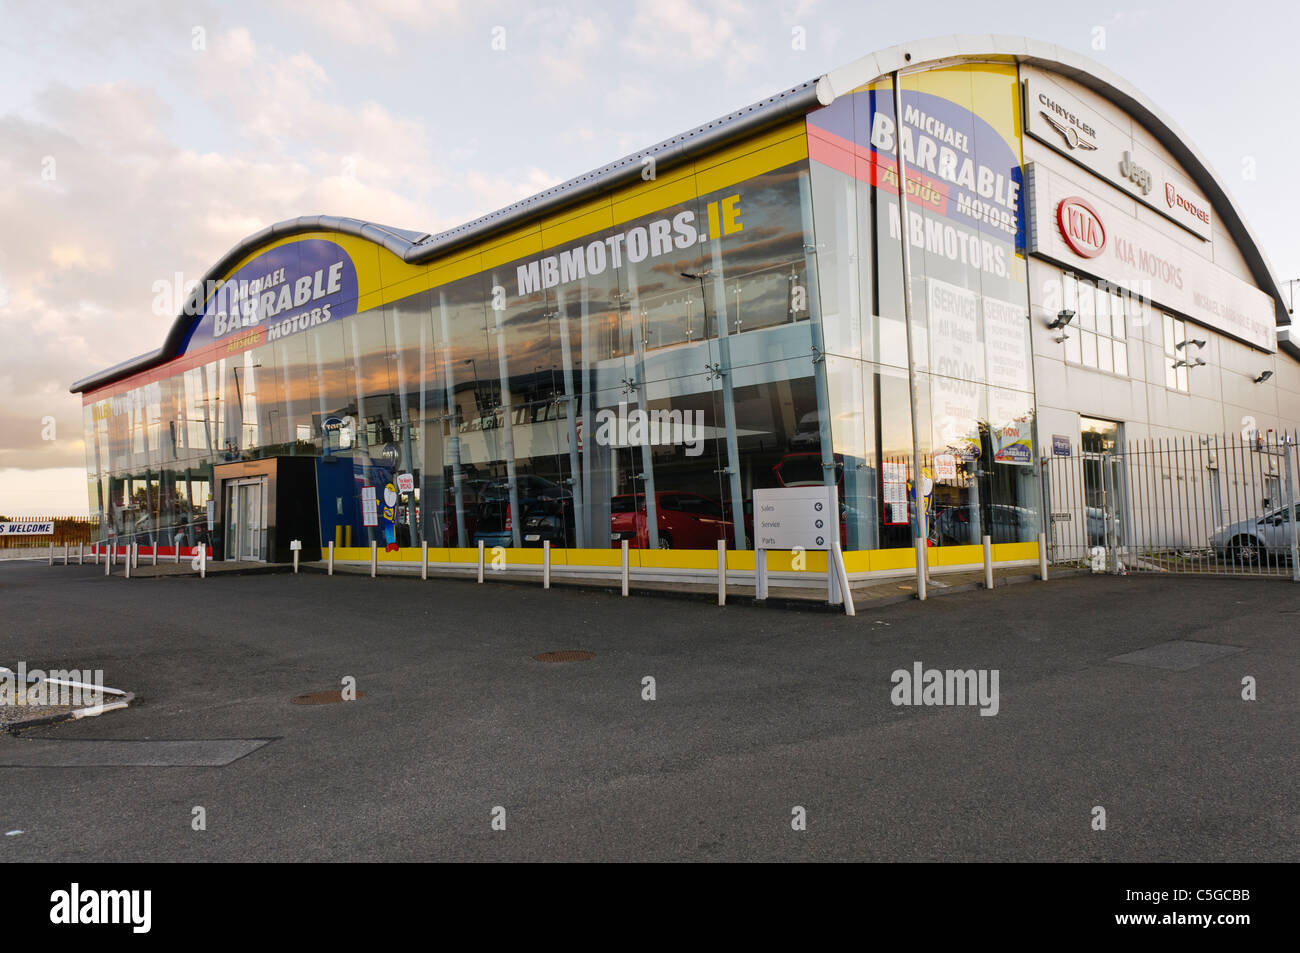 Michael Barrable Motors car dealership, Dublin - Stock Image